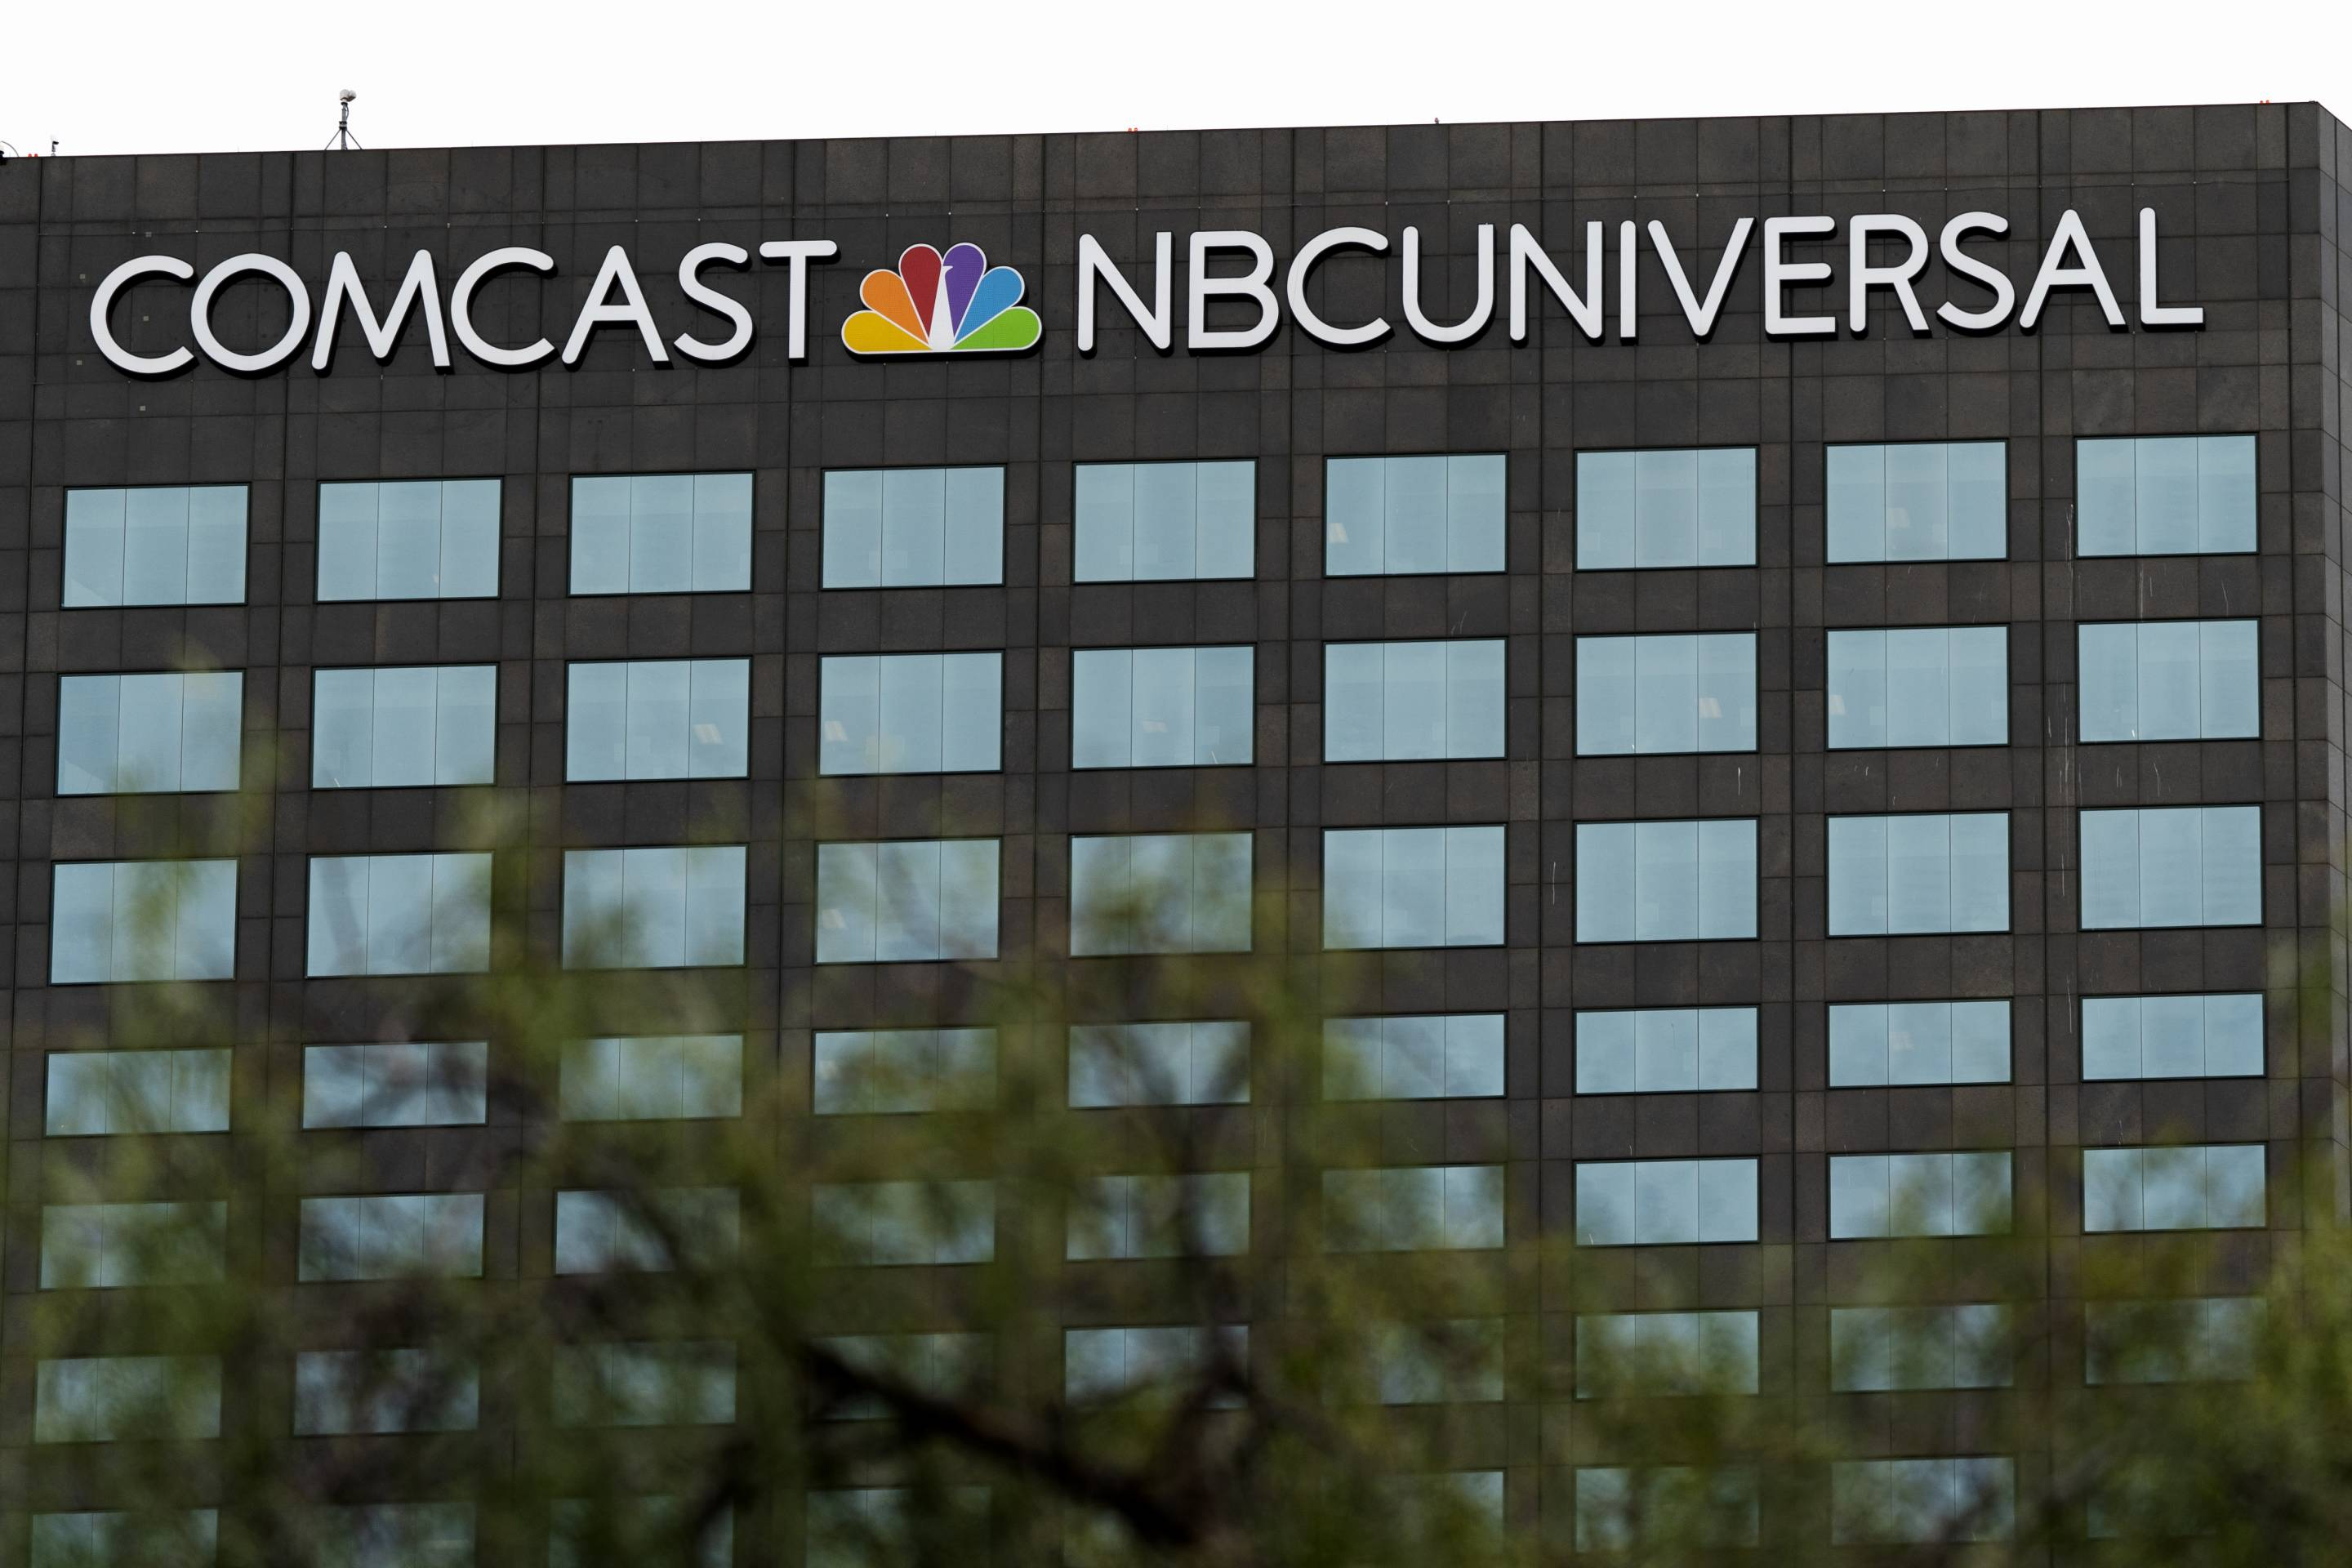 A view of the Comcast NBCUniversal building in Universal